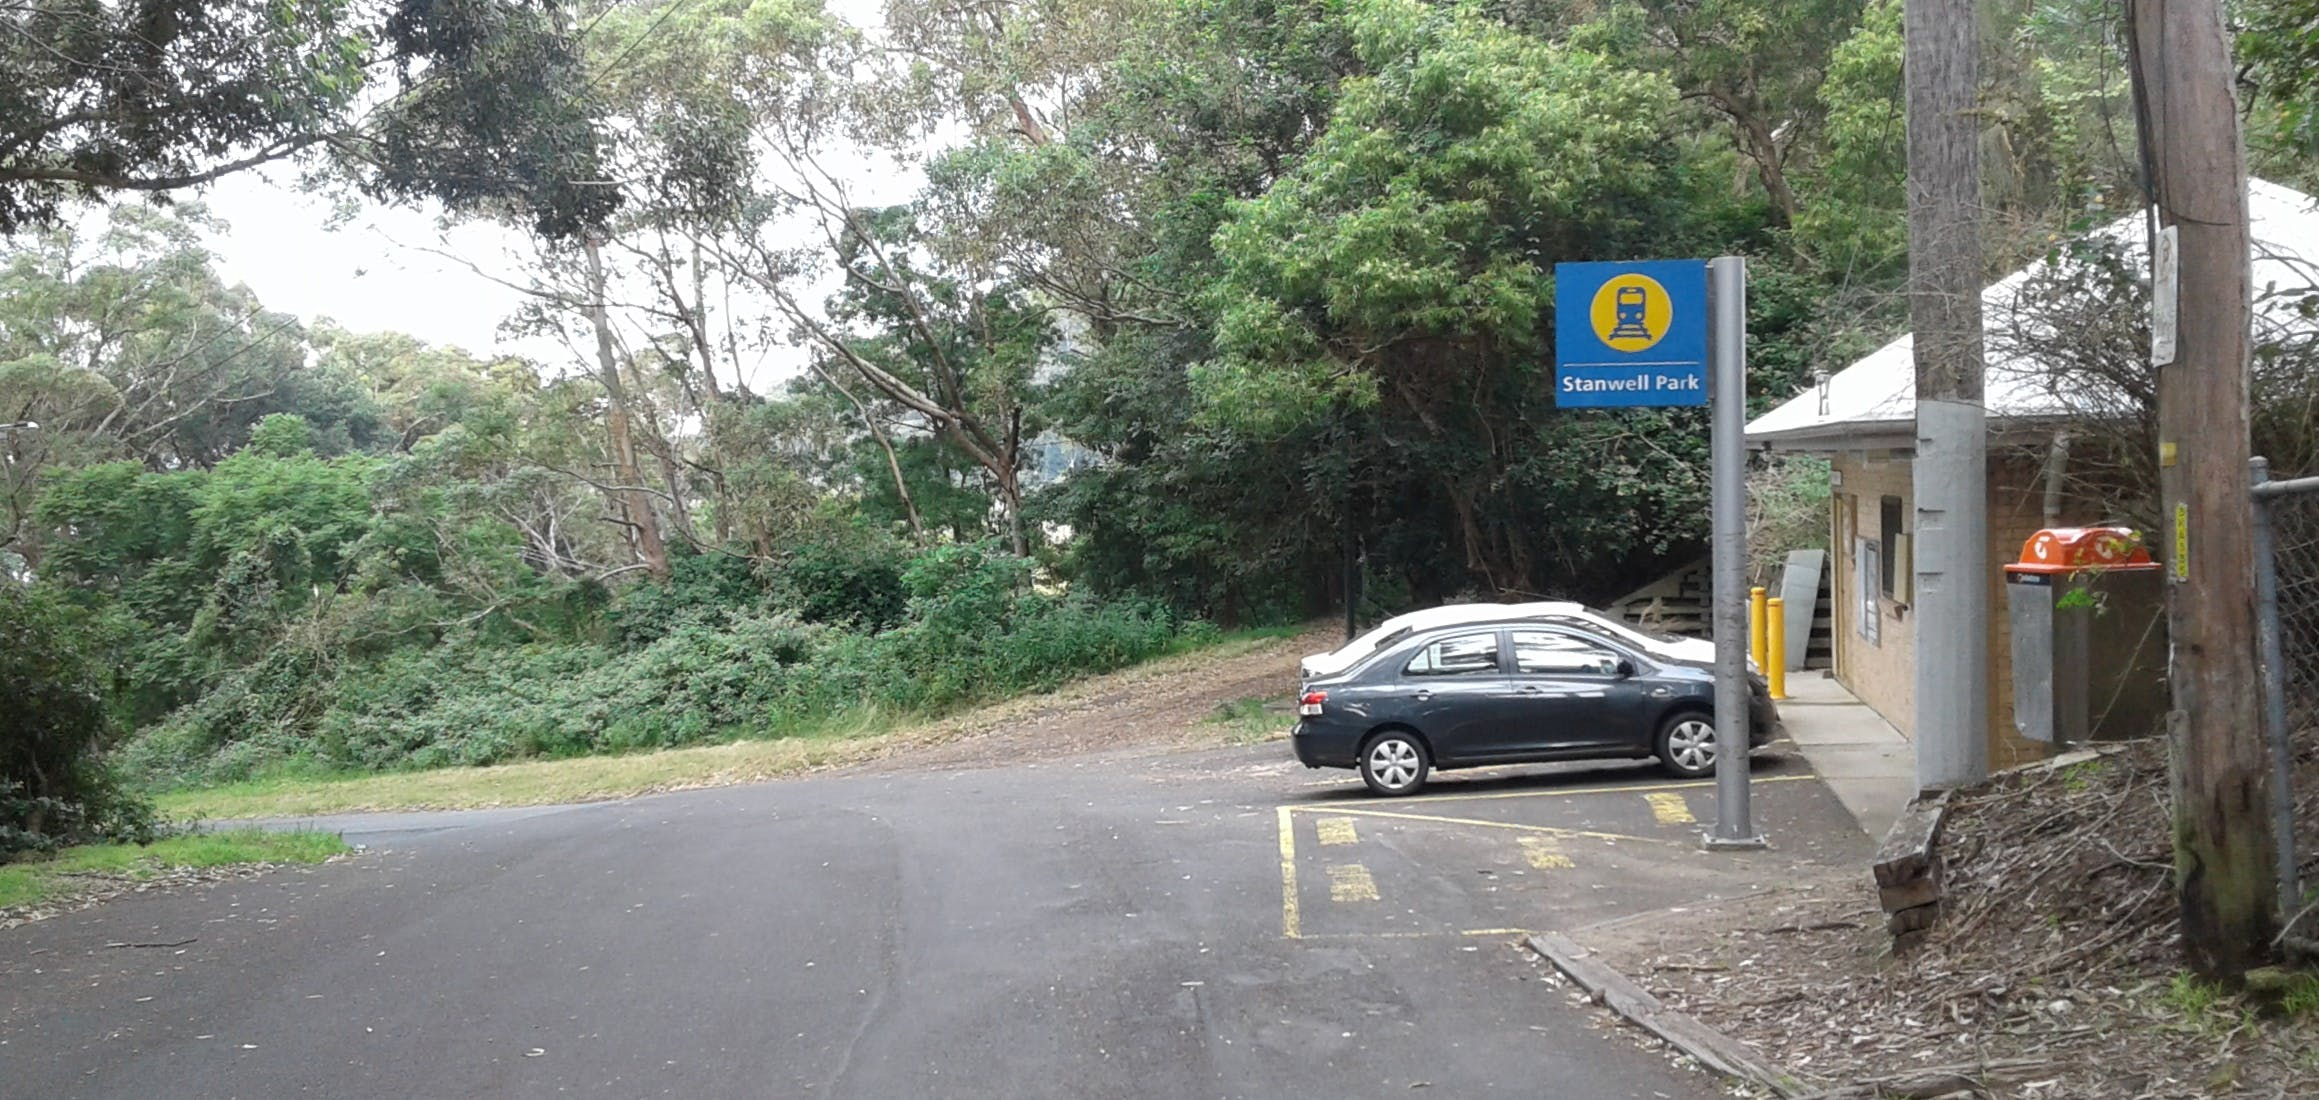 Railway Crescent carpark will be upgraded